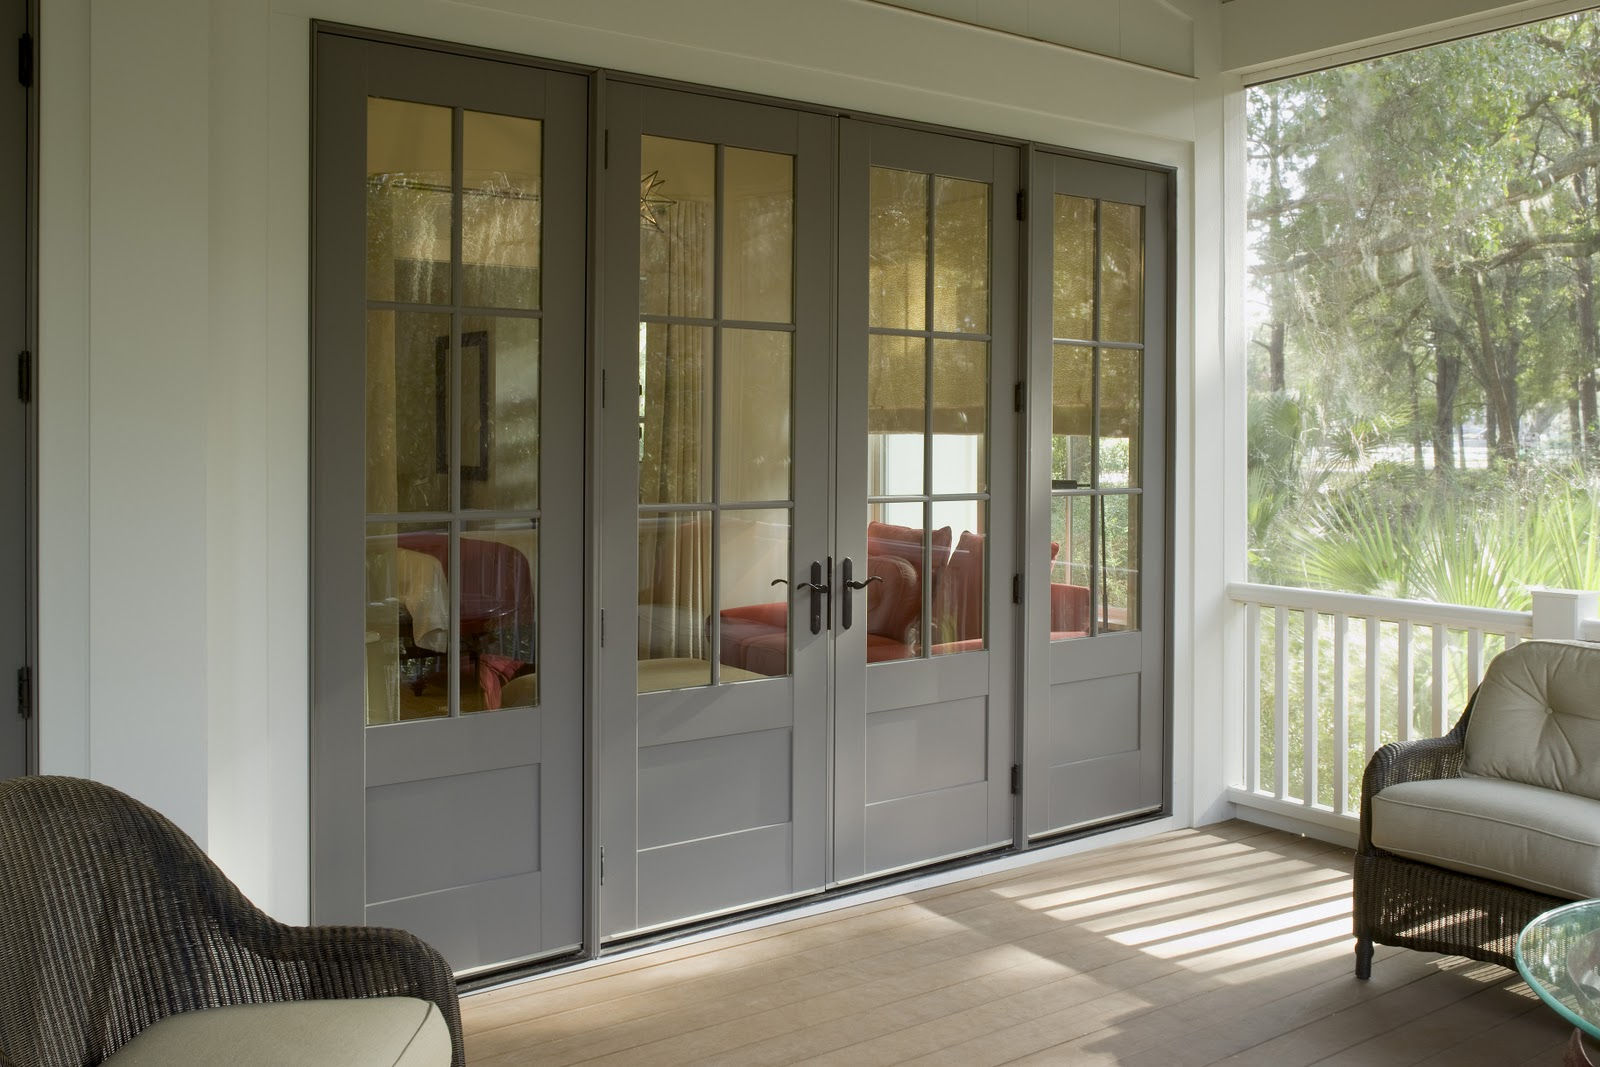 window and door installation - zrom.tk on glass french doors exterior, 4 panel doors exterior, white french doors exterior,